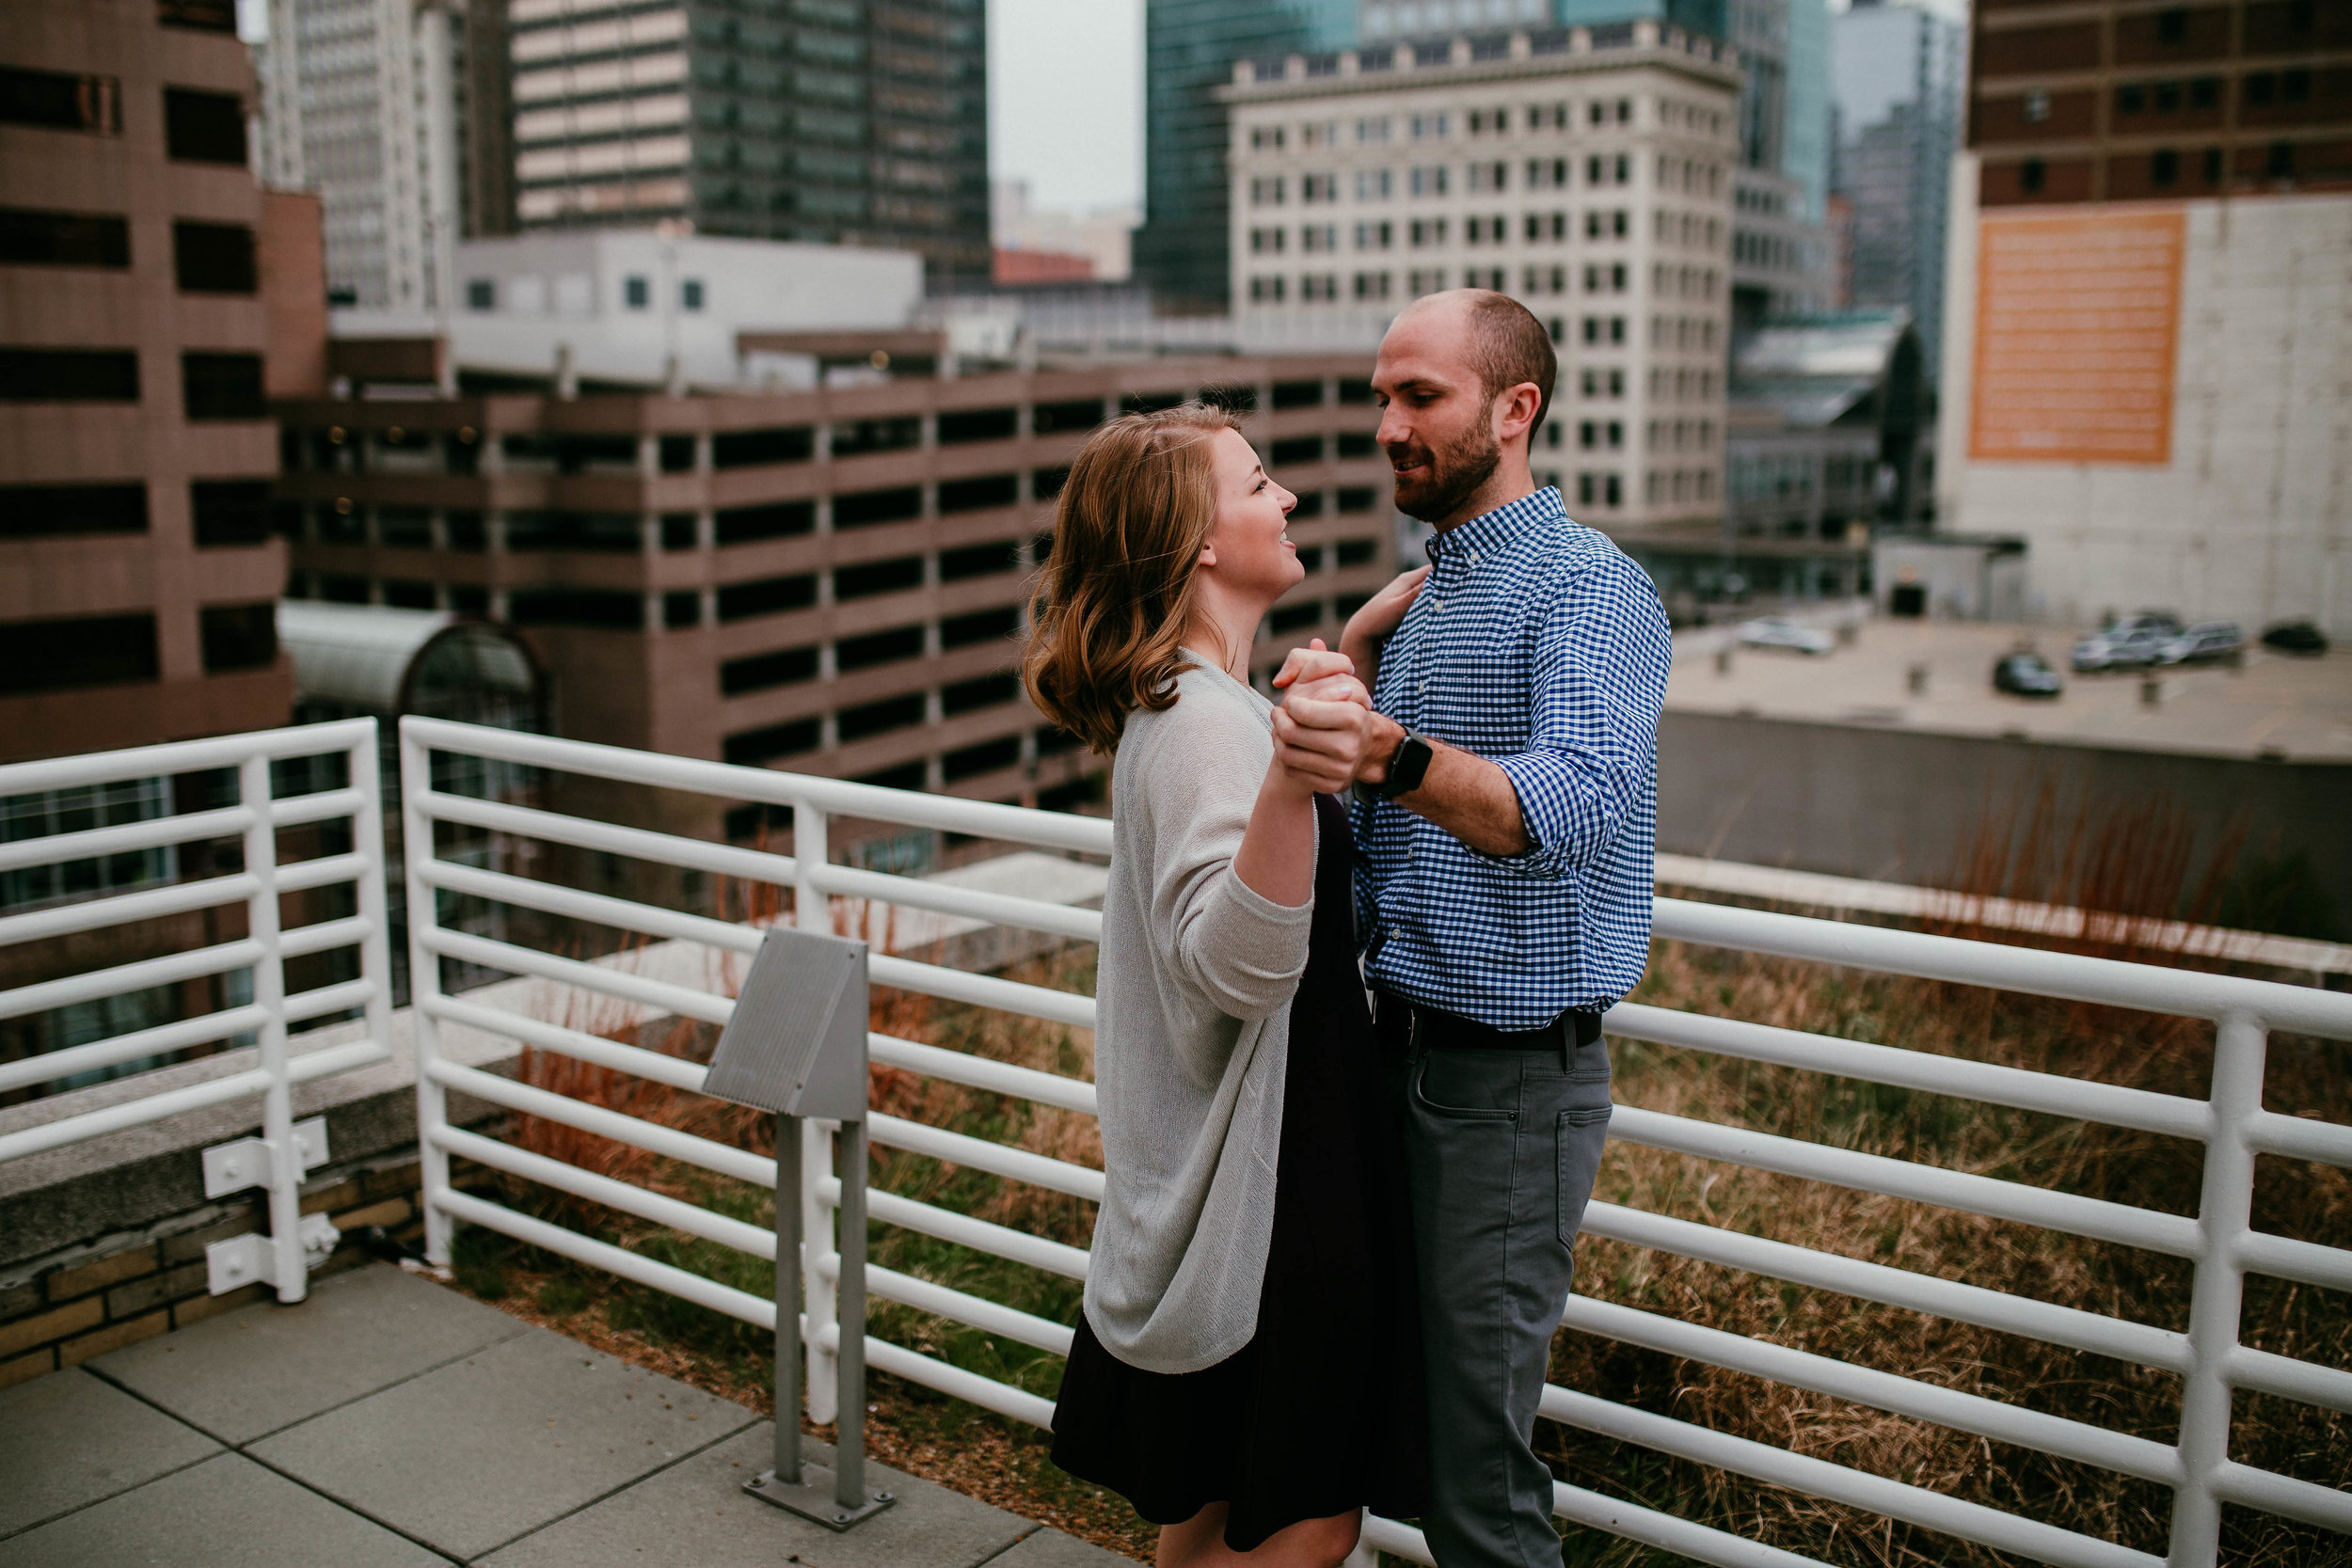 Alex & John: Downtown KC Engagement Session   Hannahill Photography   Kansas City, Mo   rooftop library session urban brick walls   engaged   couples portraits   wedding photographer   lifestyle photographer   documentary love story photographer